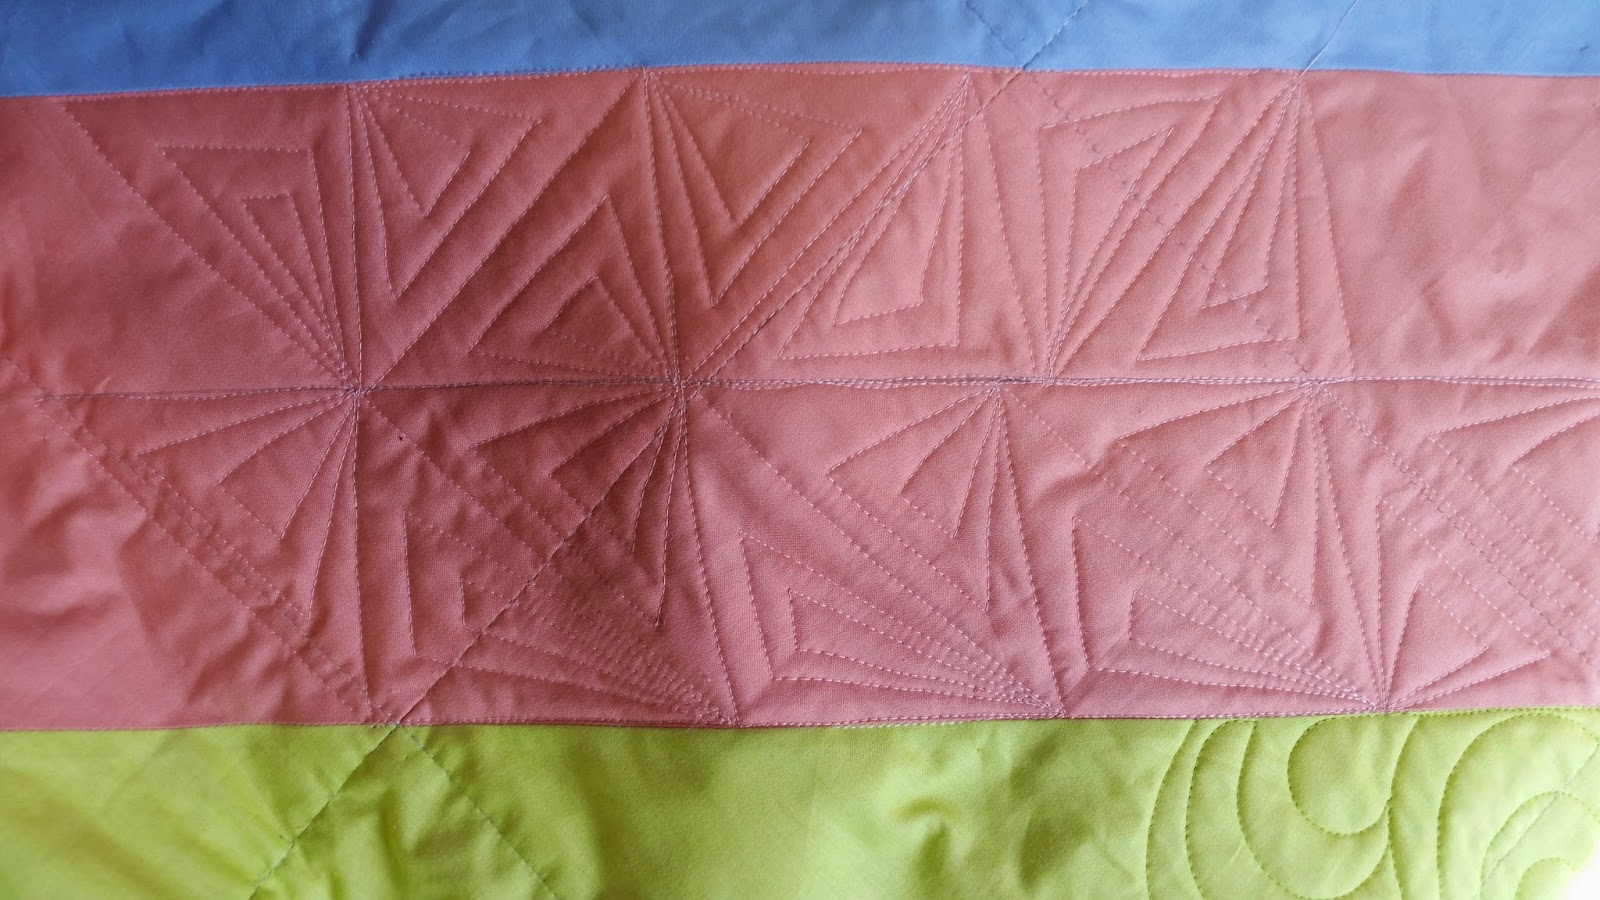 Elven Garden Quilts: Free Motion QAL - Stacked Triangles Tutorial and a linky party